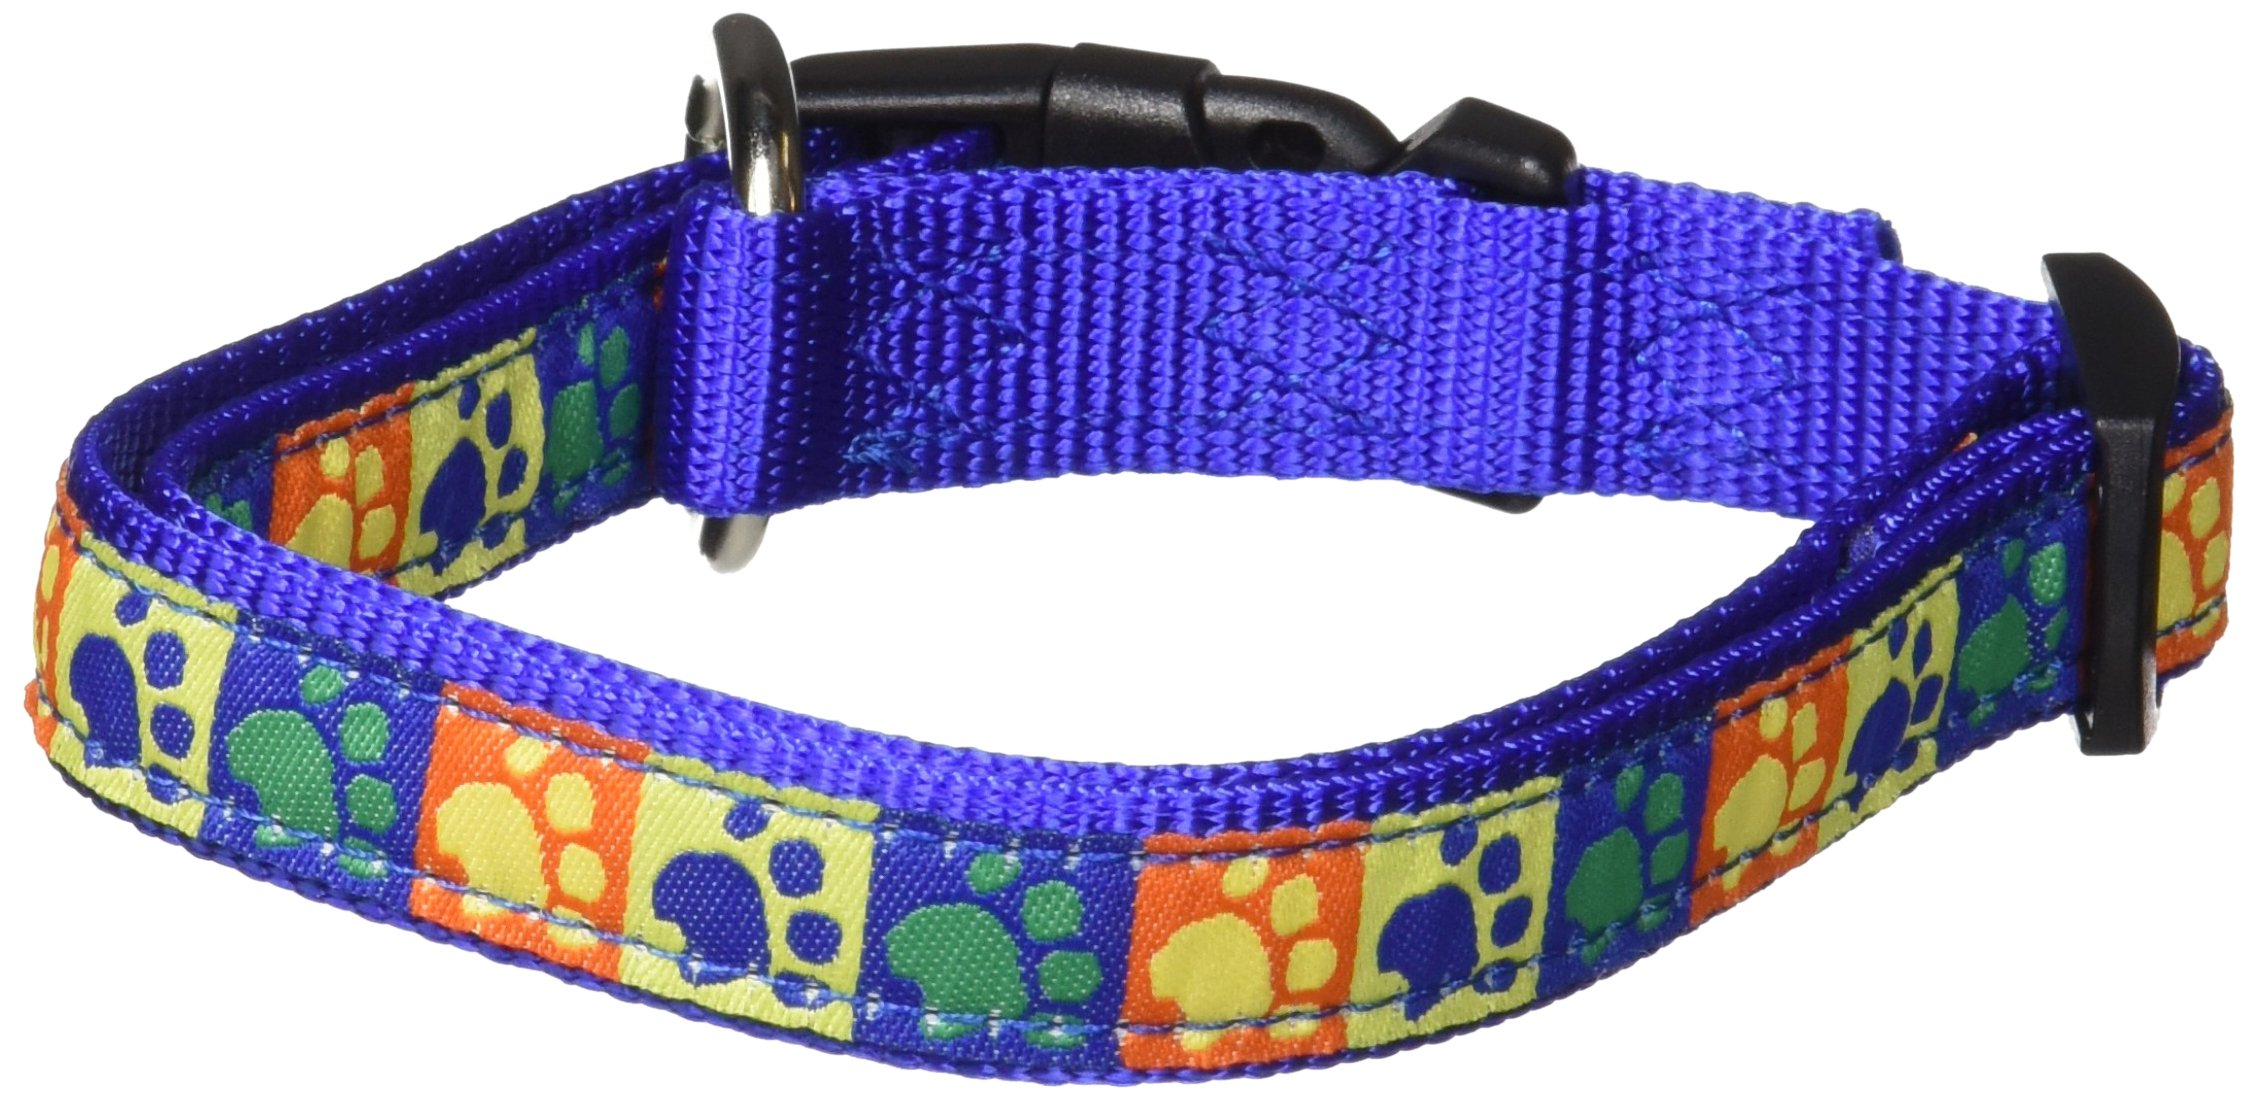 Hamilton 5/8'' x 12''-18'' Adjustable Dog Collar with Primitive Paws Patterned Ribbon Overlay, Small